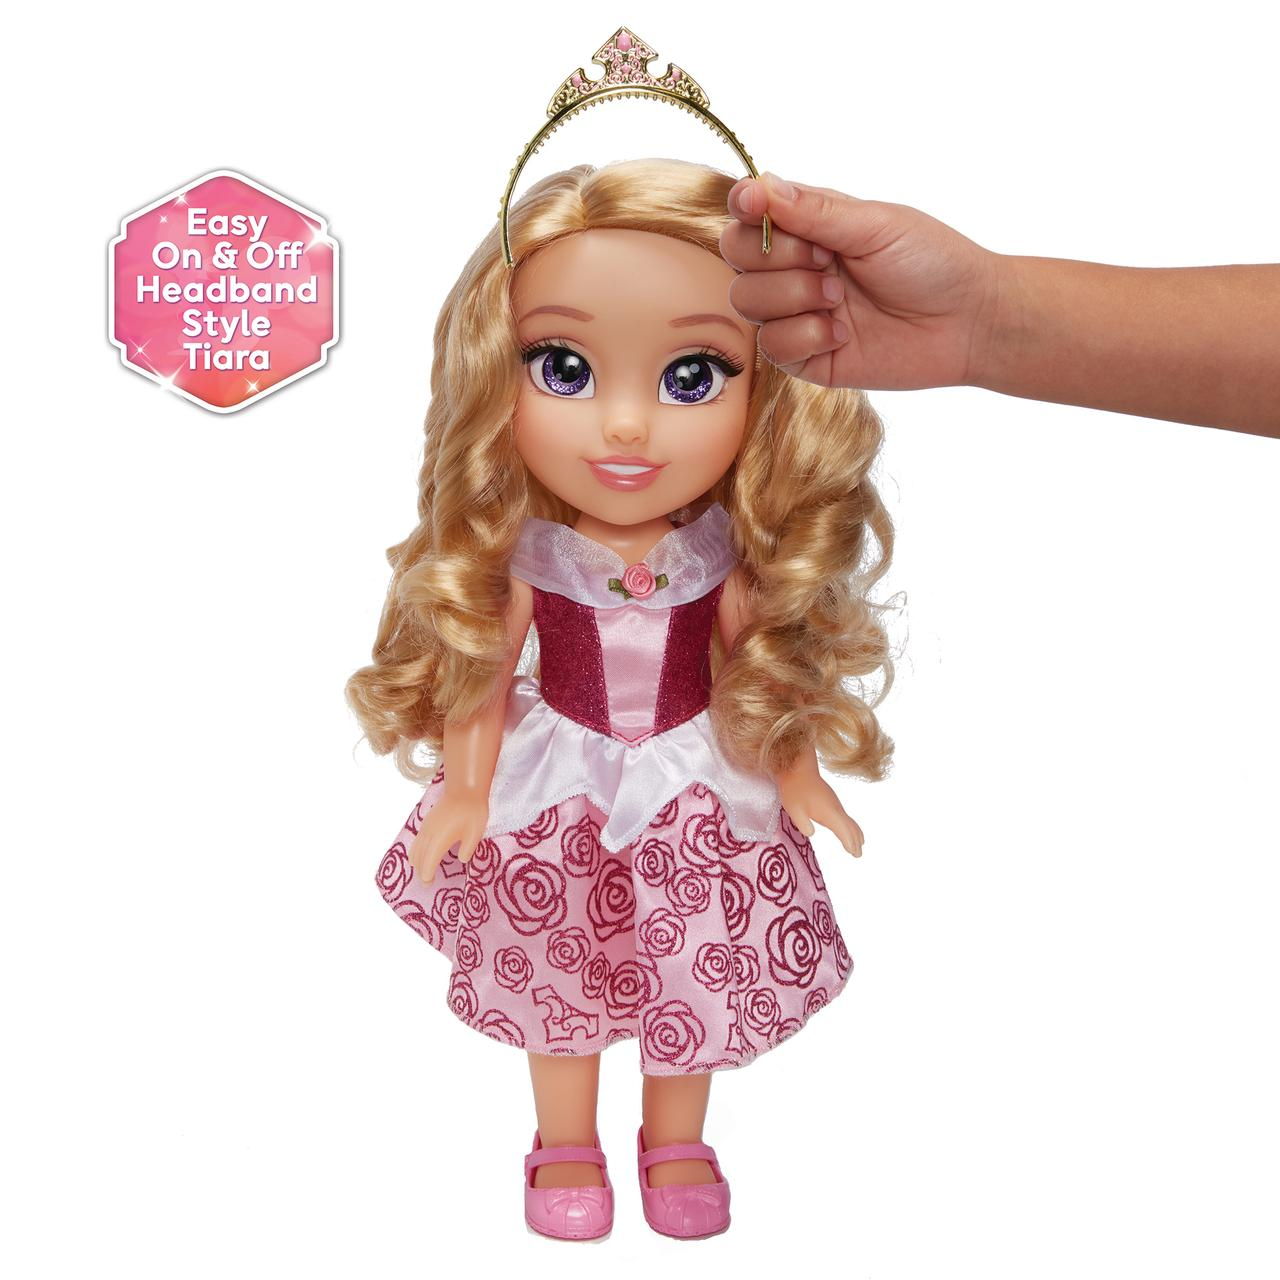 """Disney Princess My Friend Aurora Doll 14/"""" Tall with Removable Outfit and Tiara"""